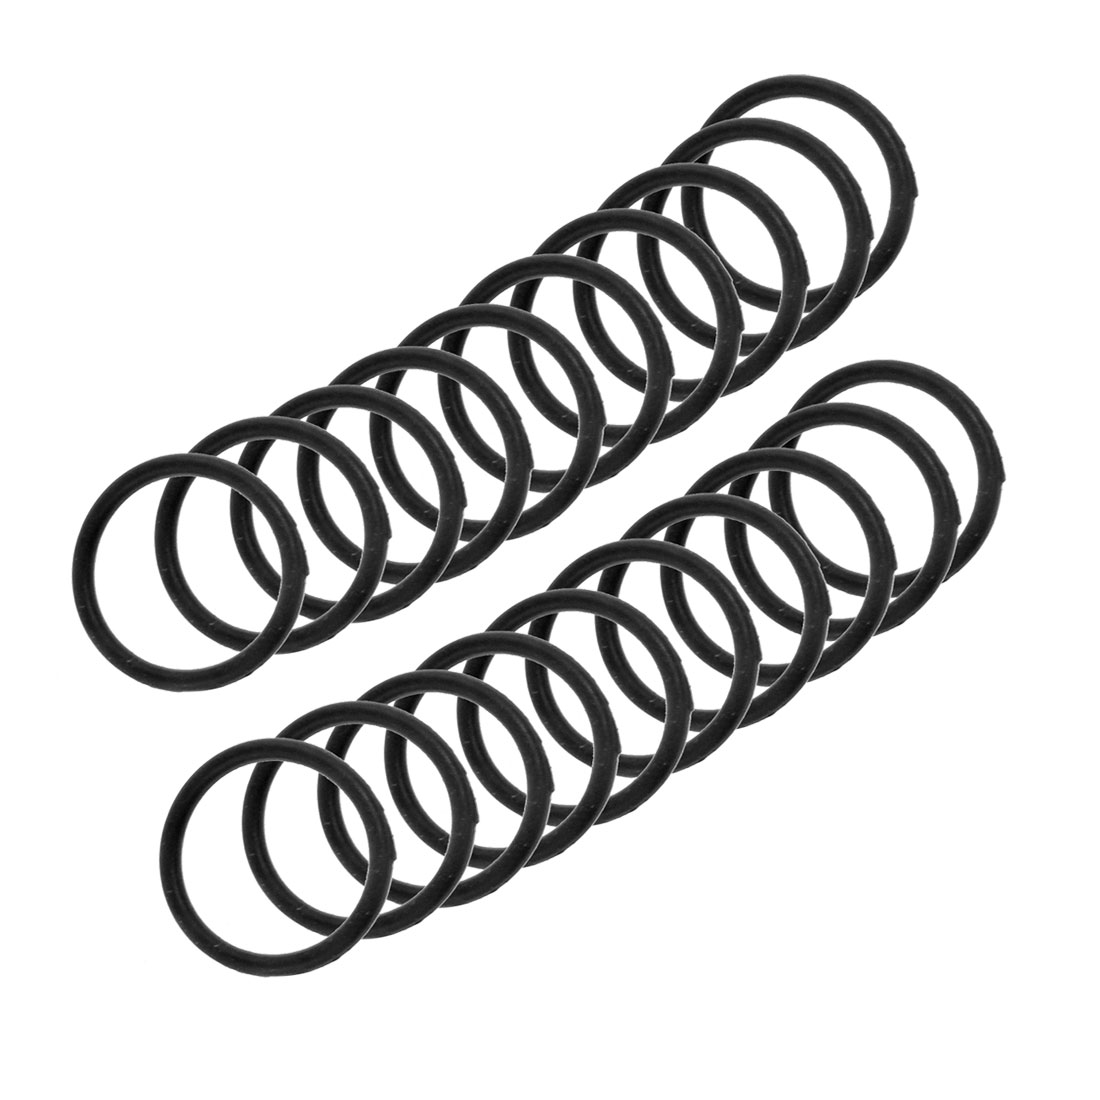 20 Pcs Flexible Rubber O Ring Seal Washer Black 25mm x 2.4mm